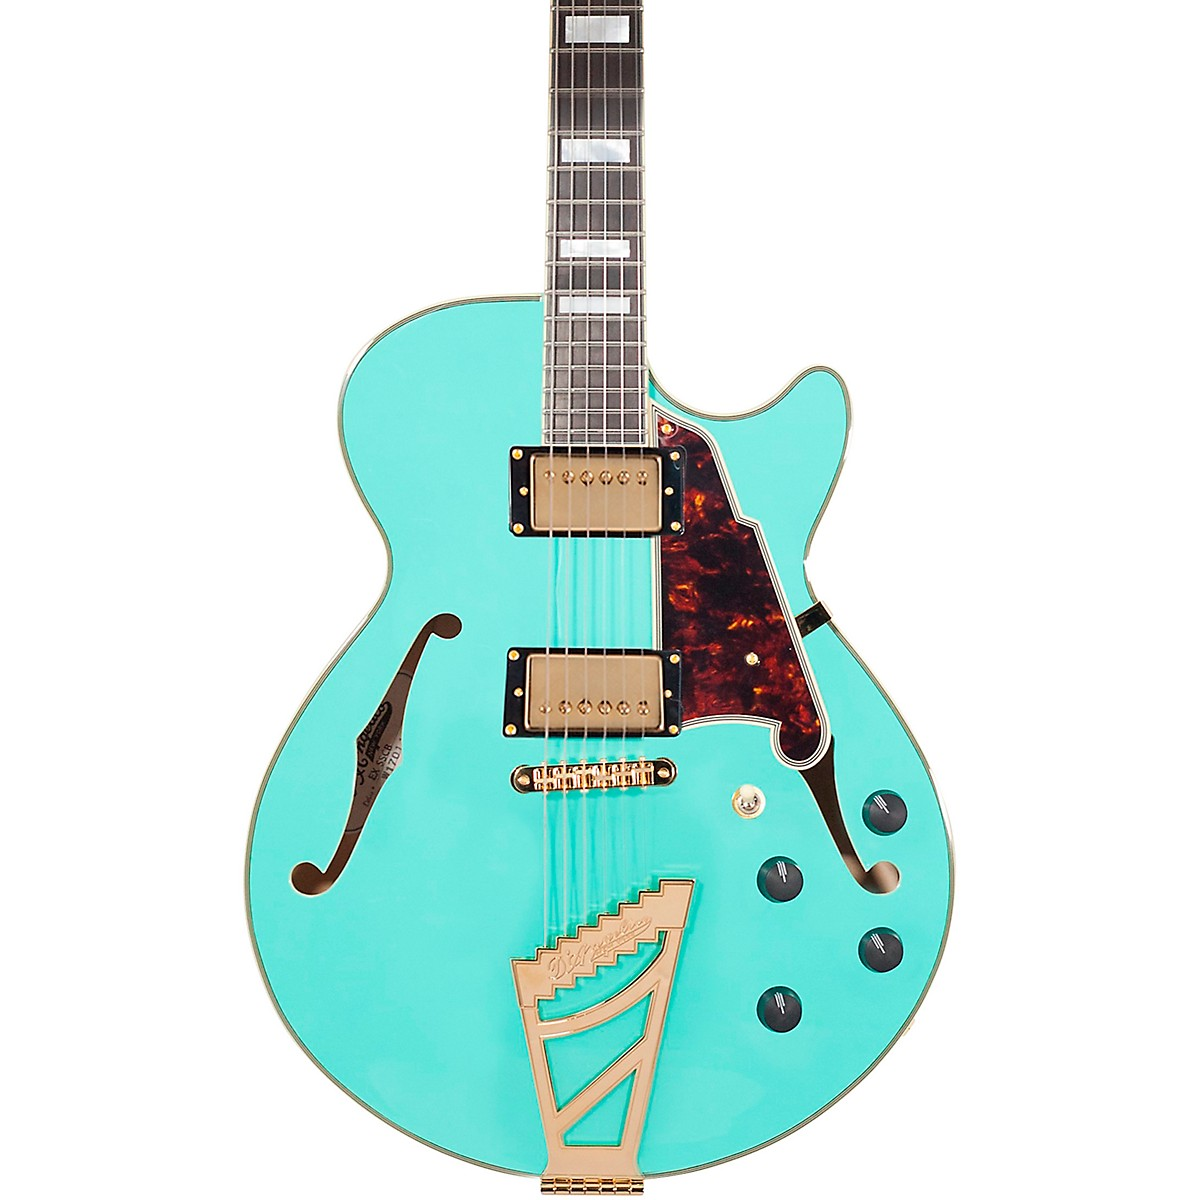 D'Angelico Excel Series SS Semi-Hollowbody Electric Guitar with Stairstep Tailpiece